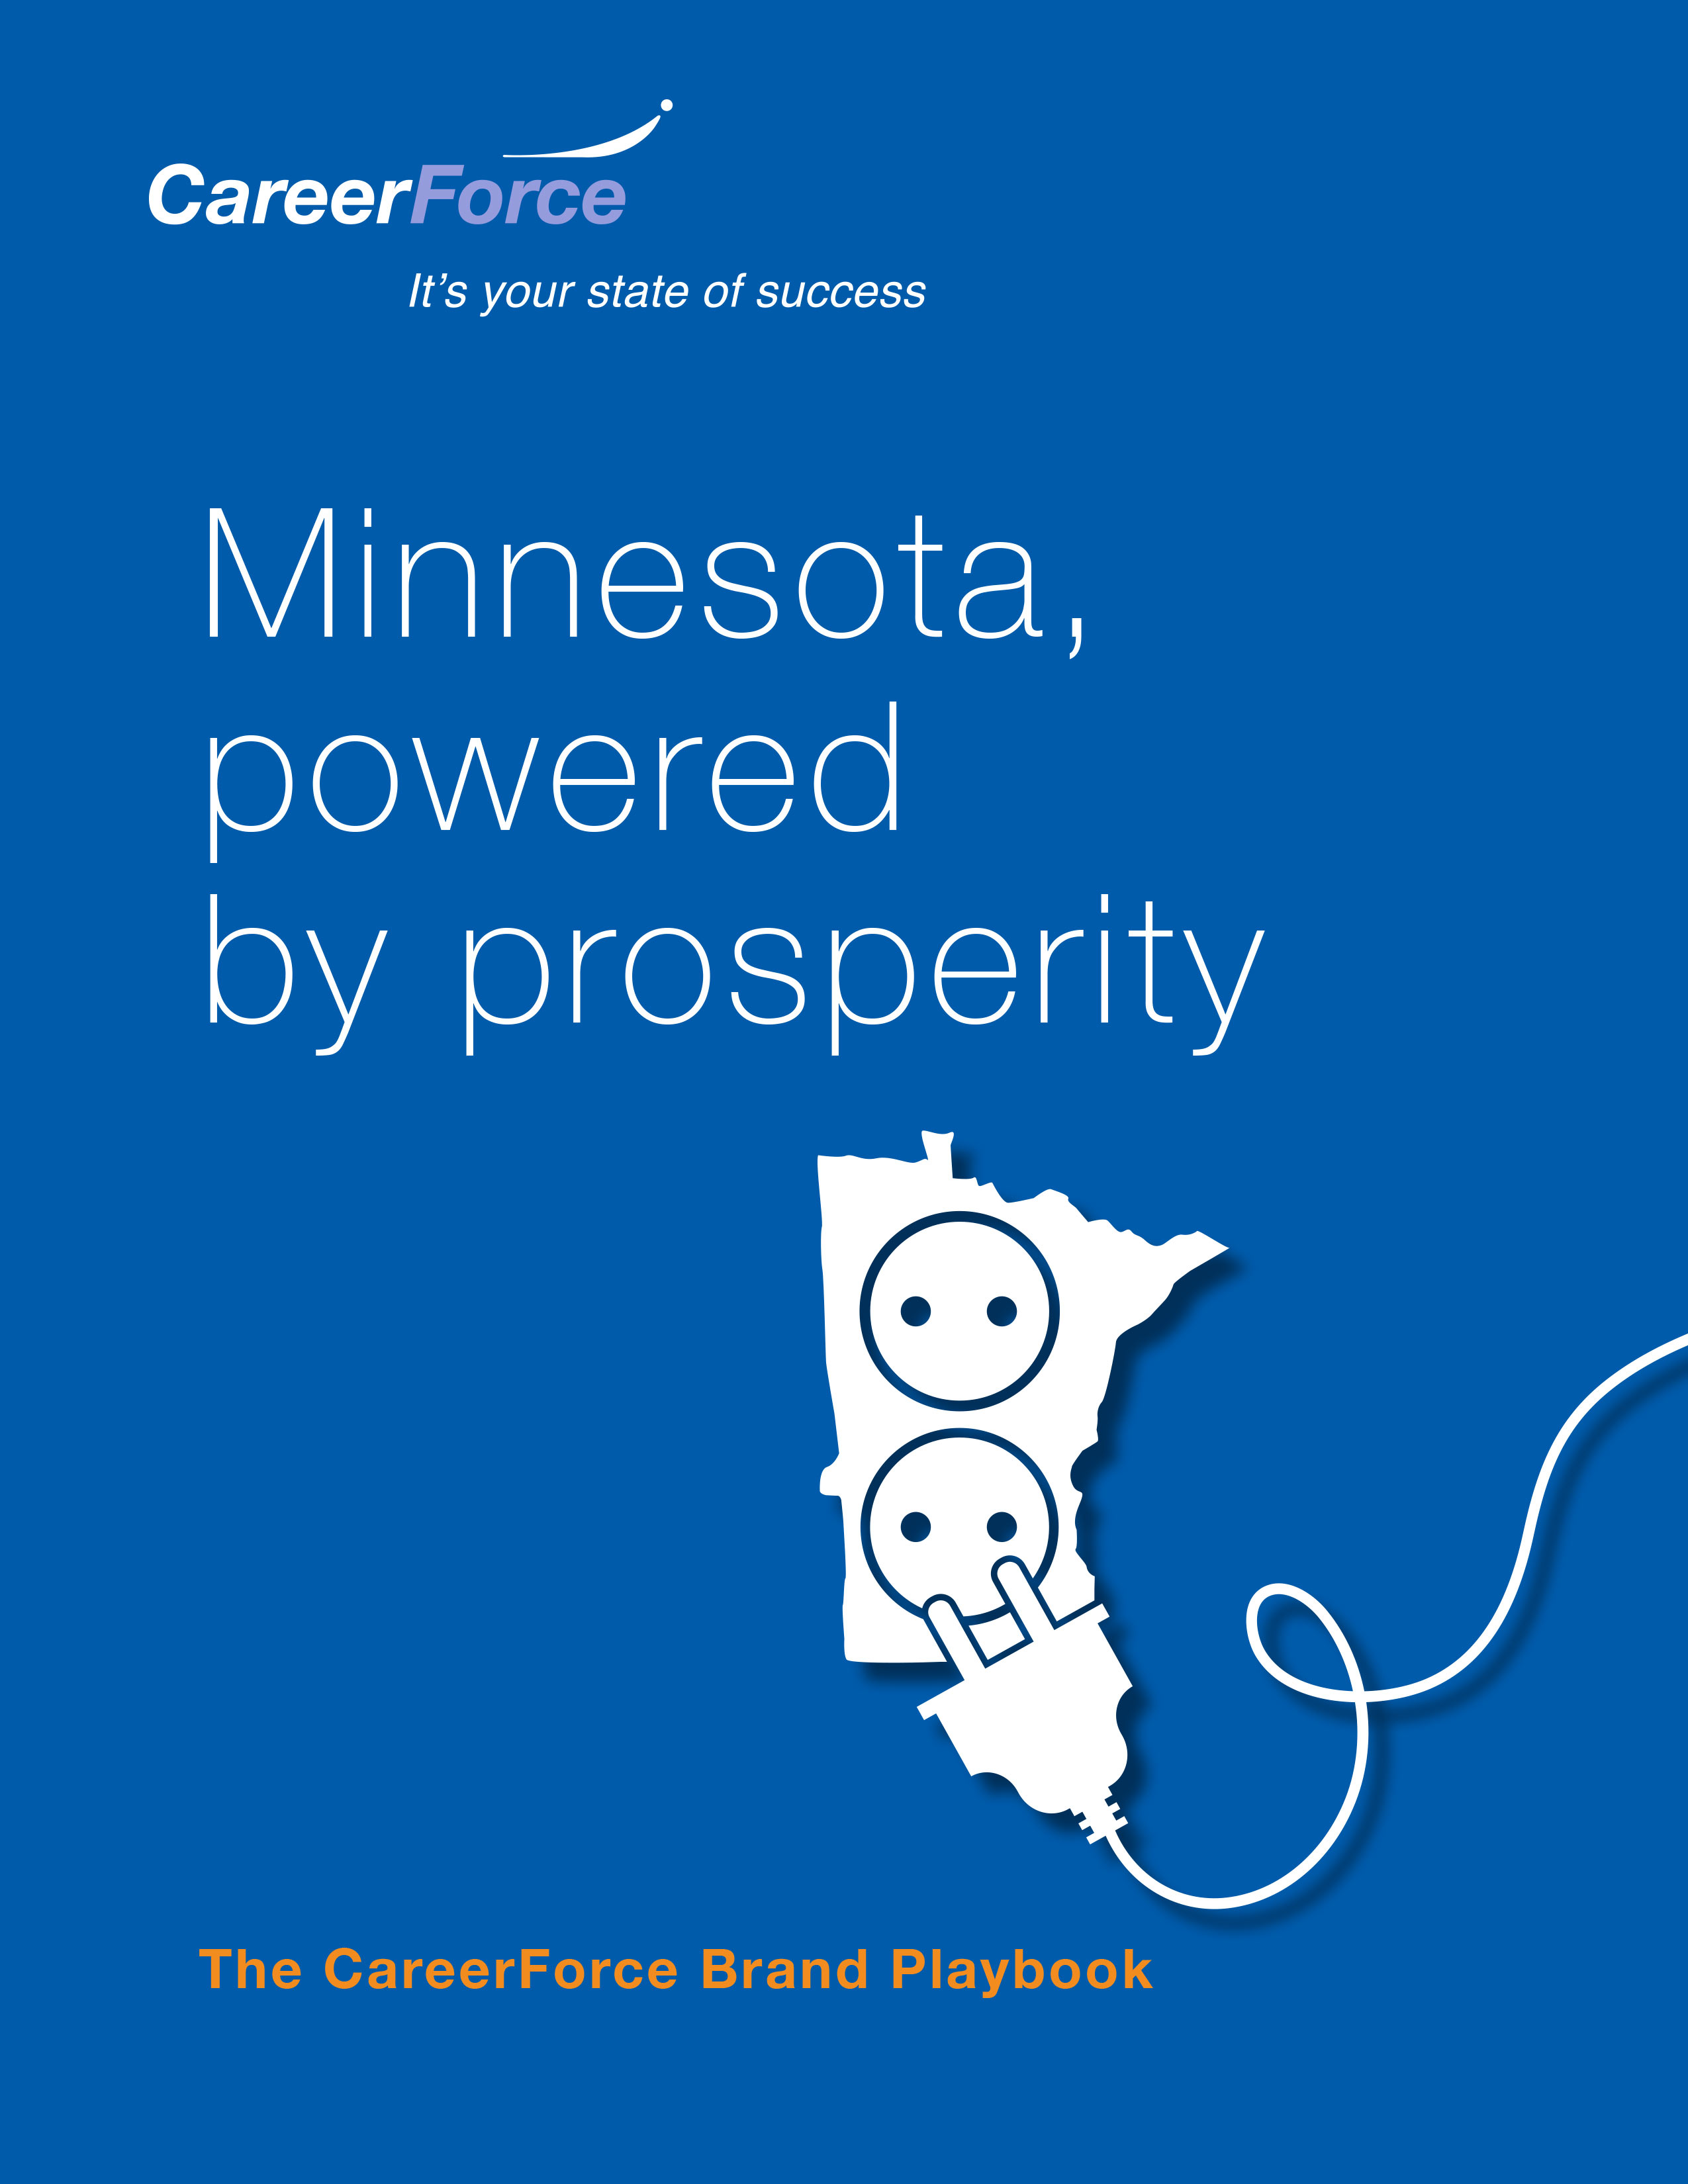 CareerForce brand playbook cover titled: Minnesota, powered by prosperity